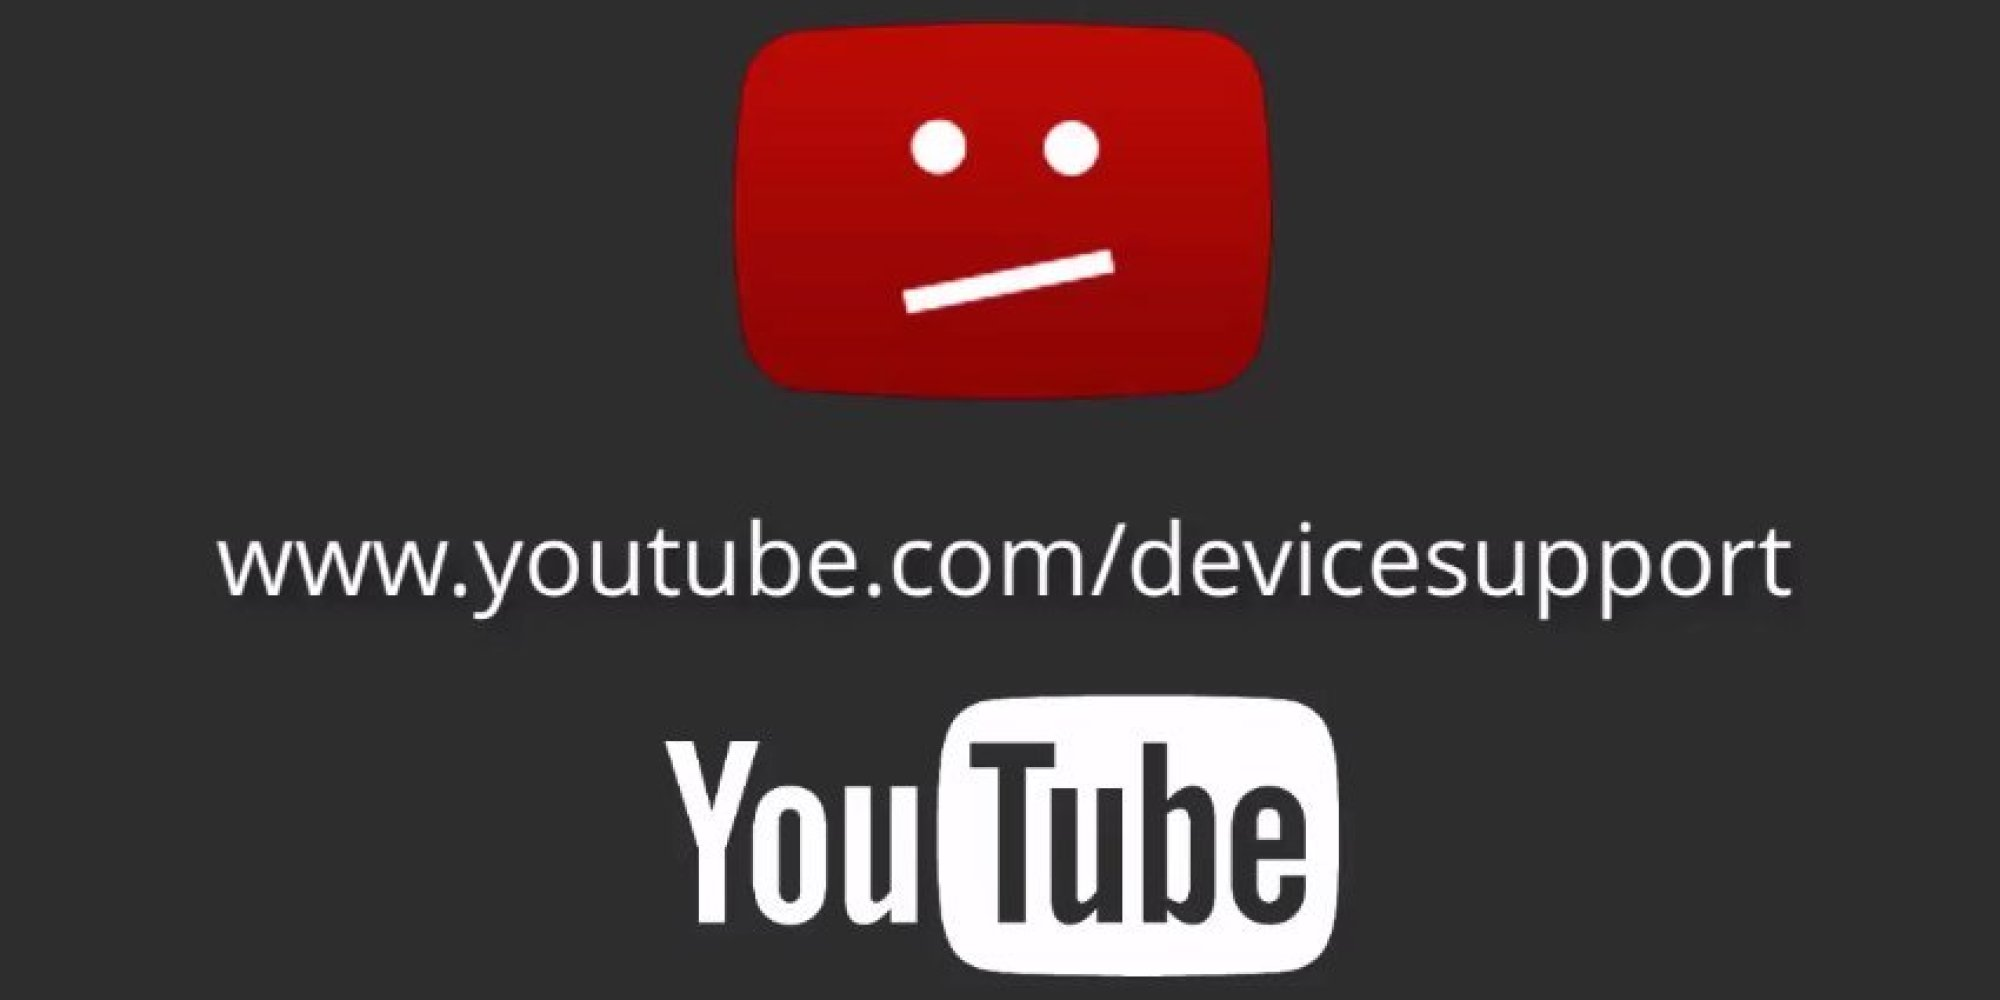 How to install a french drain youtube - Youtube Is Killing Its App On Old Iphones Other Devices